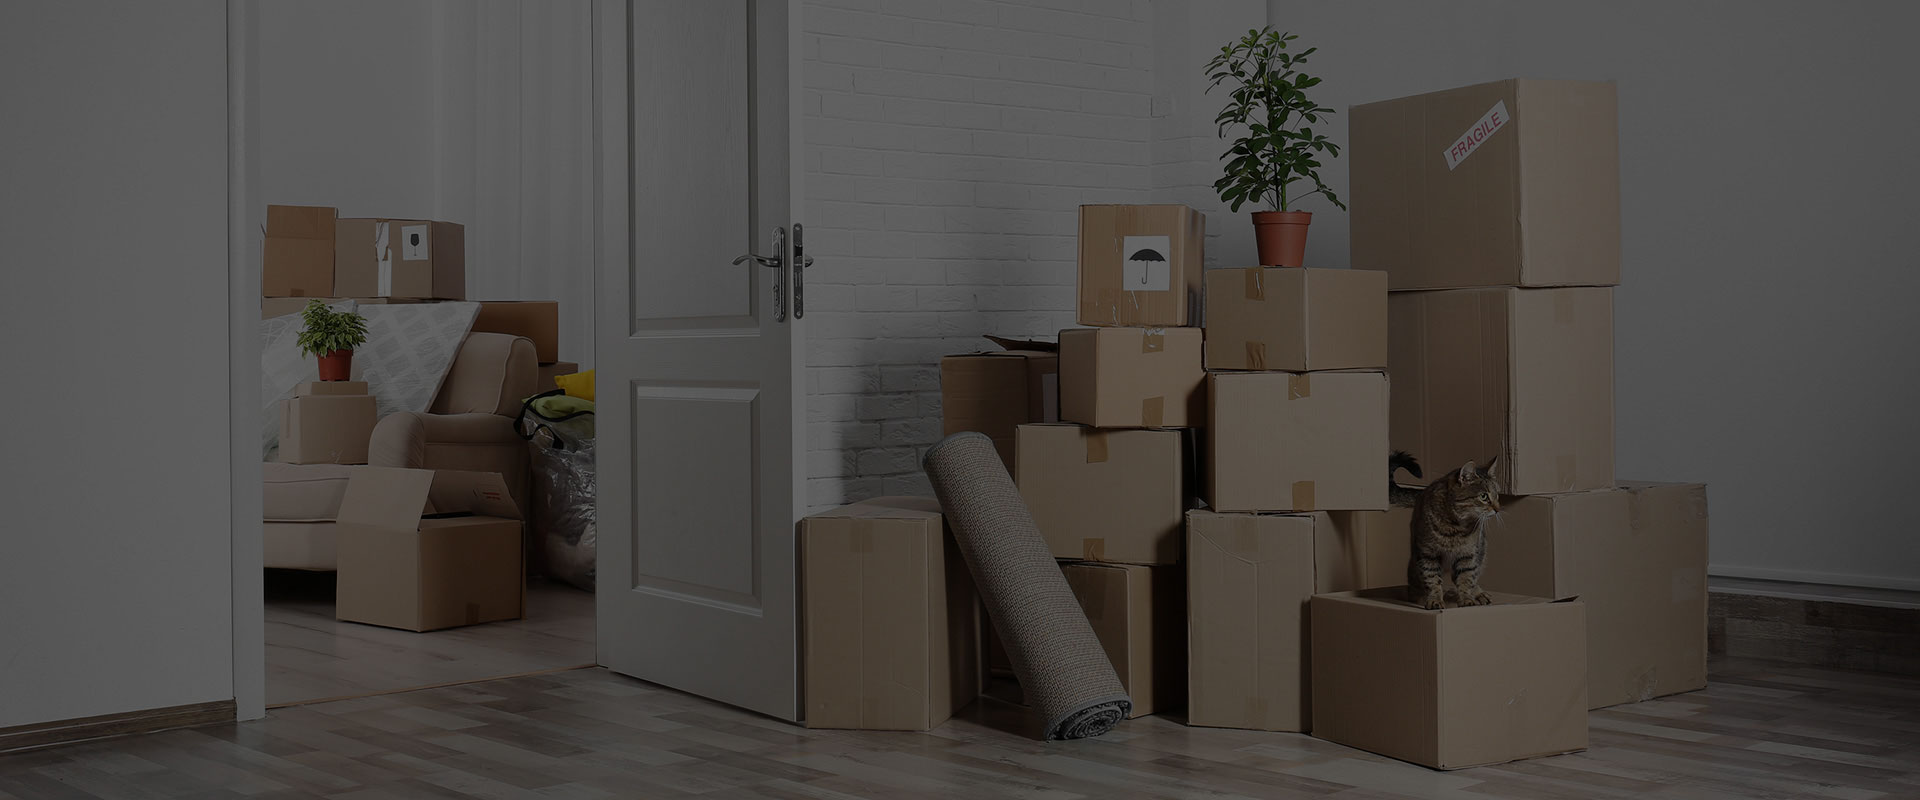 Image: boxes stacked in a living room